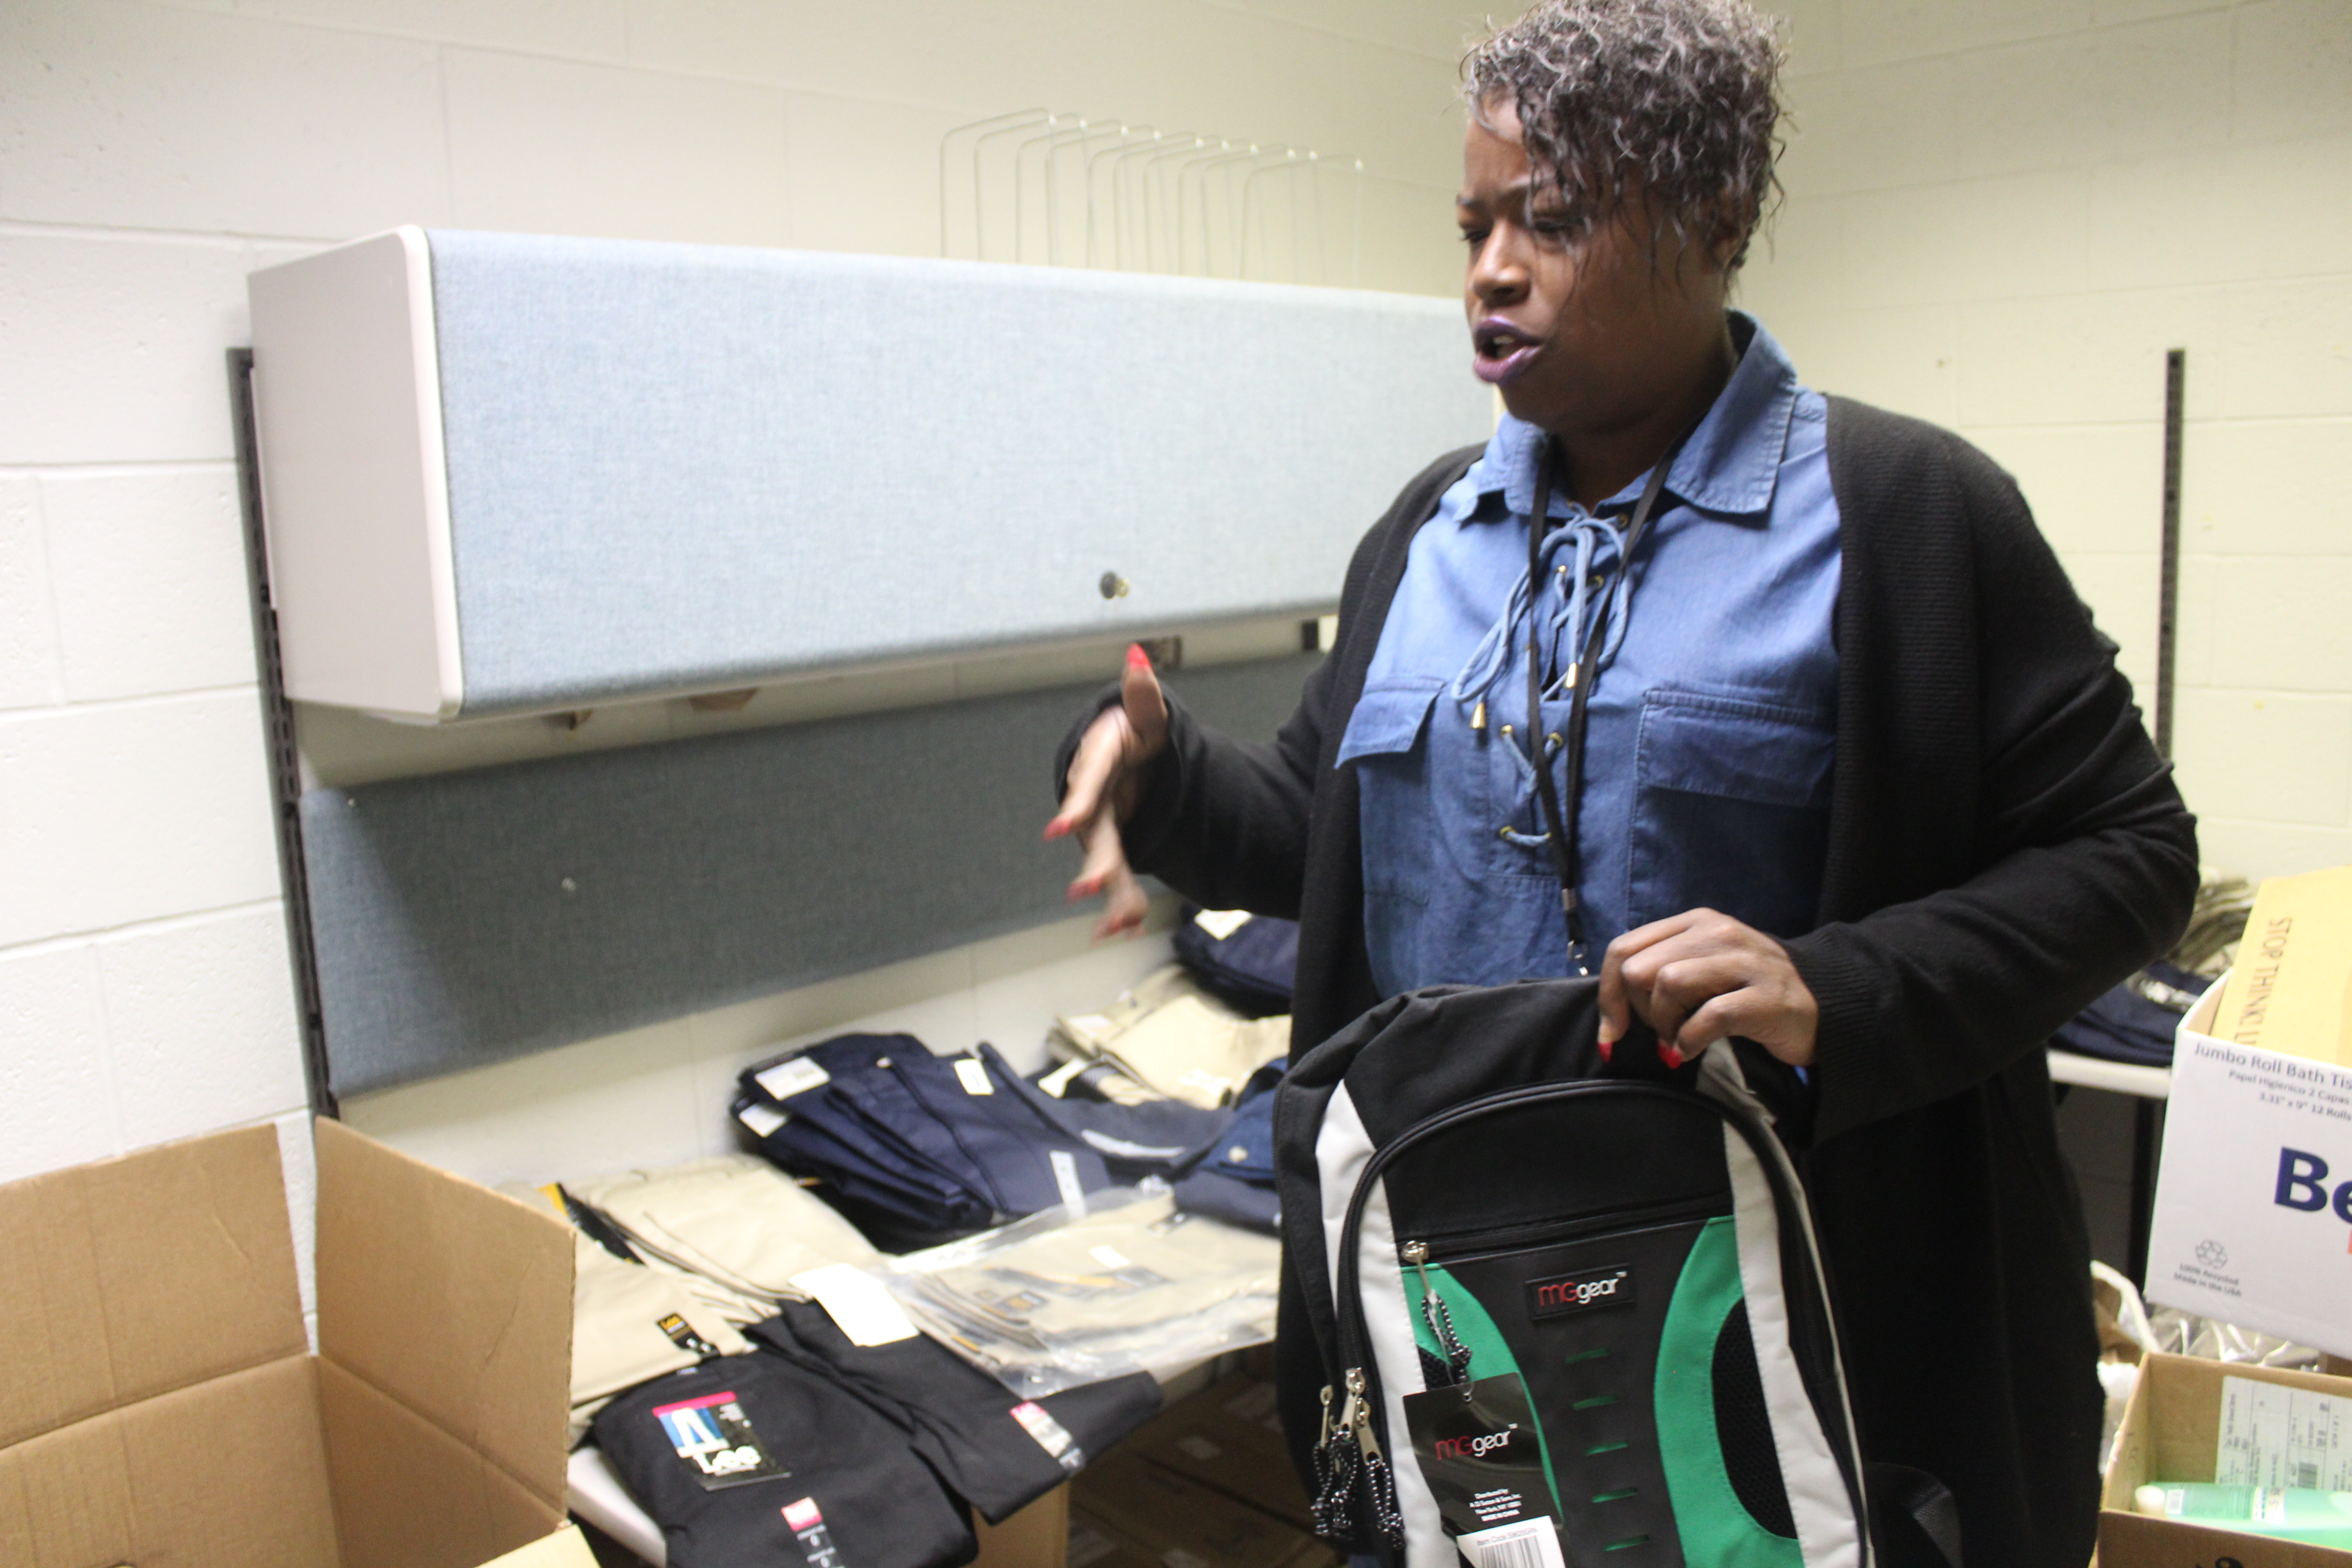 Charie Gibson, the McKinney-Vento liaison for Indianapolis Public Schools, talks about her role in serving homeless students while gathering supplies for a family.